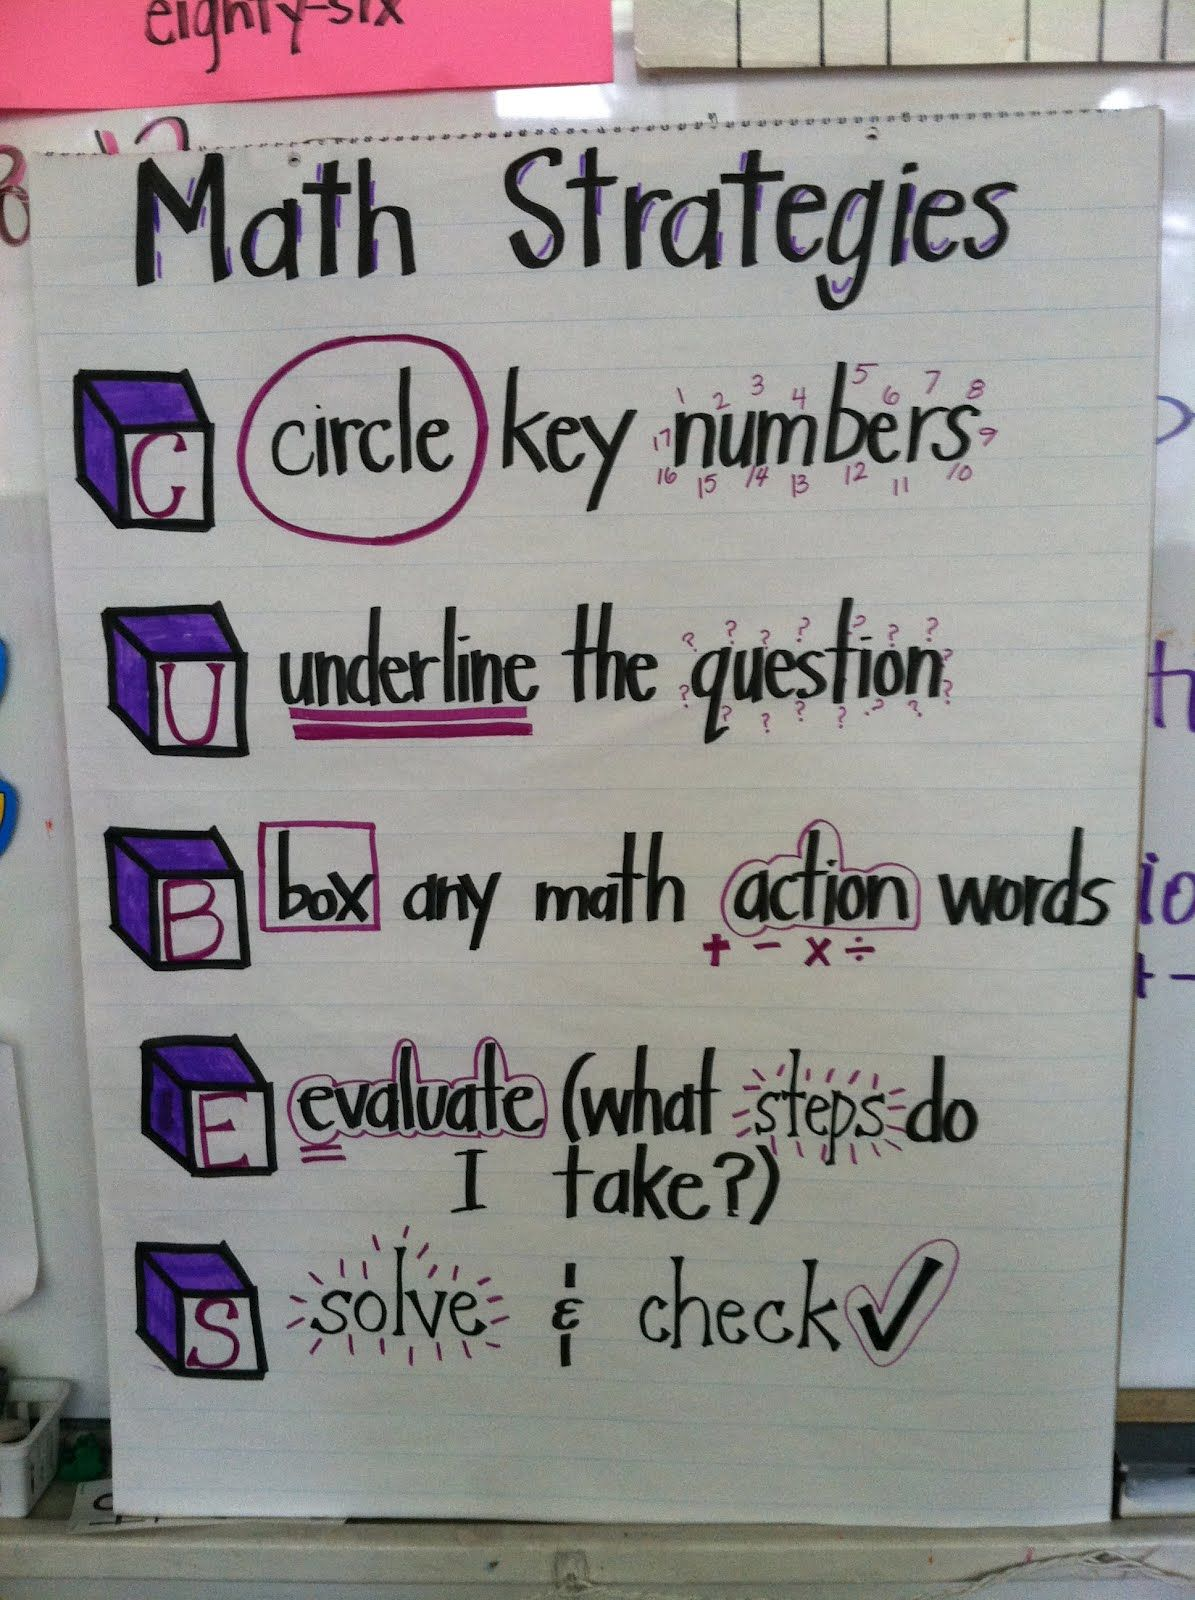 Timeouts and tootsie rolls test prep is underway math teaching problem solving strategies anchor chart for word problems good to adapt for ccuart Gallery